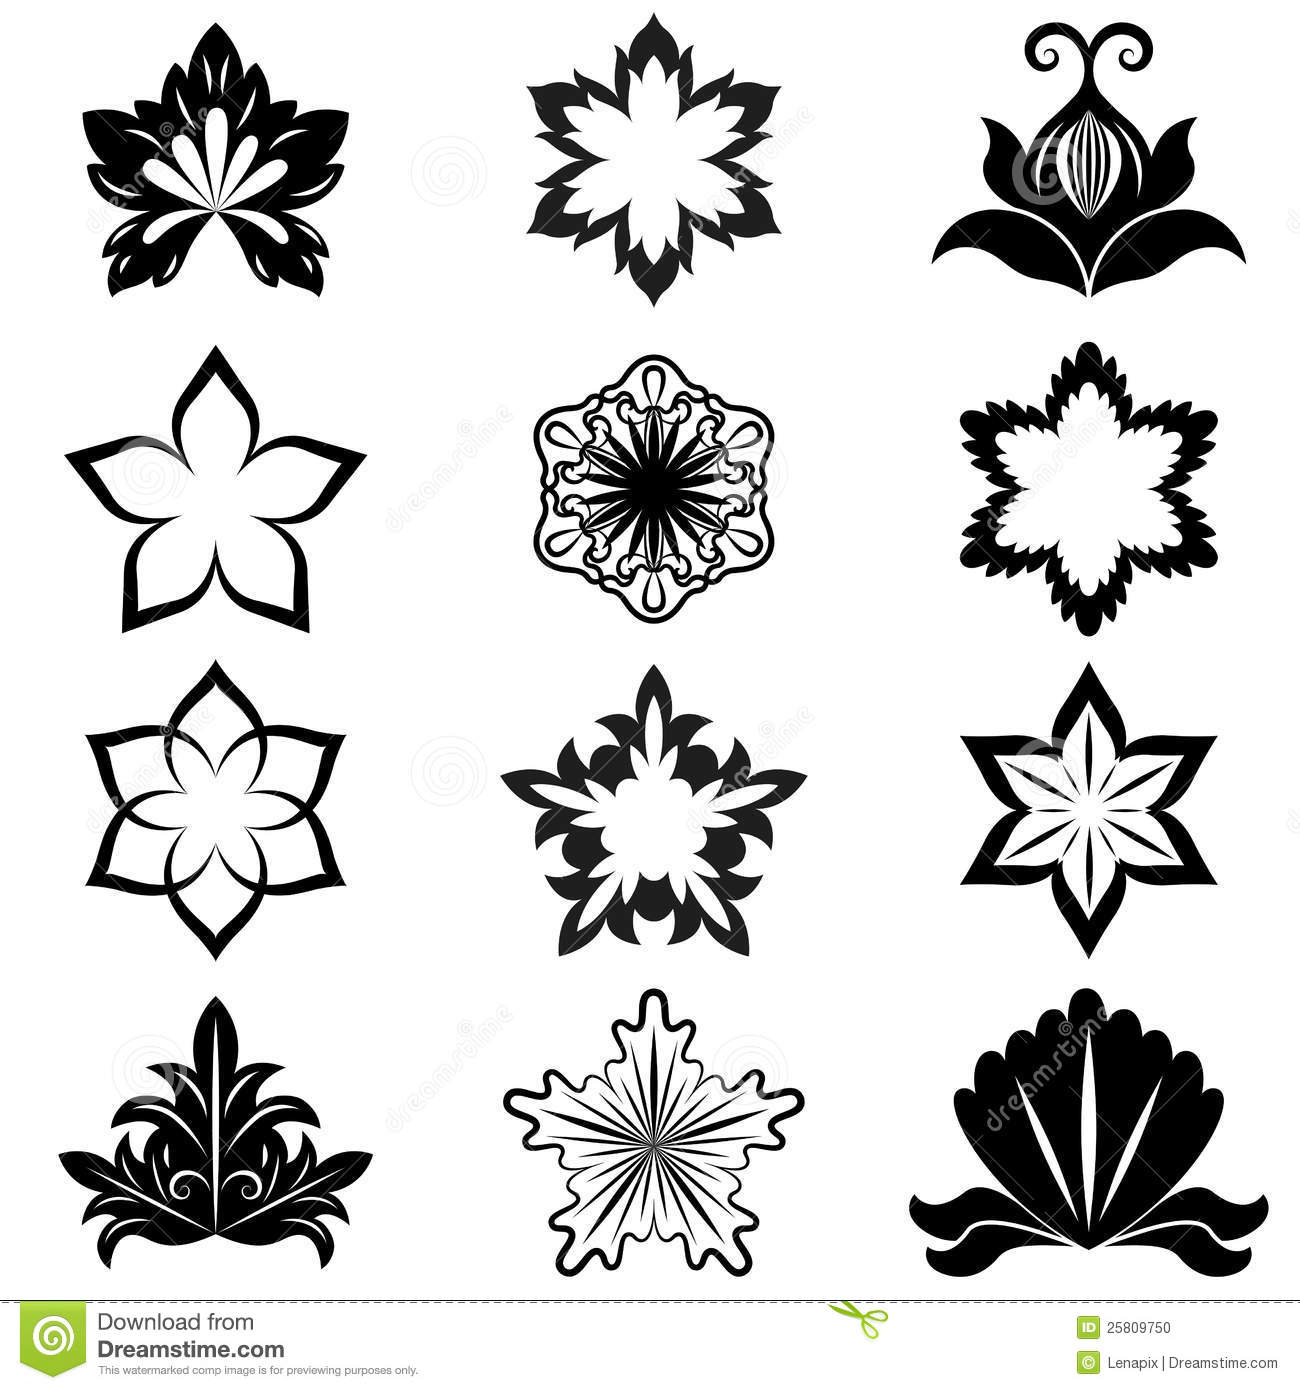 Black And White Flower Design Stock Vector Illustration Of Border